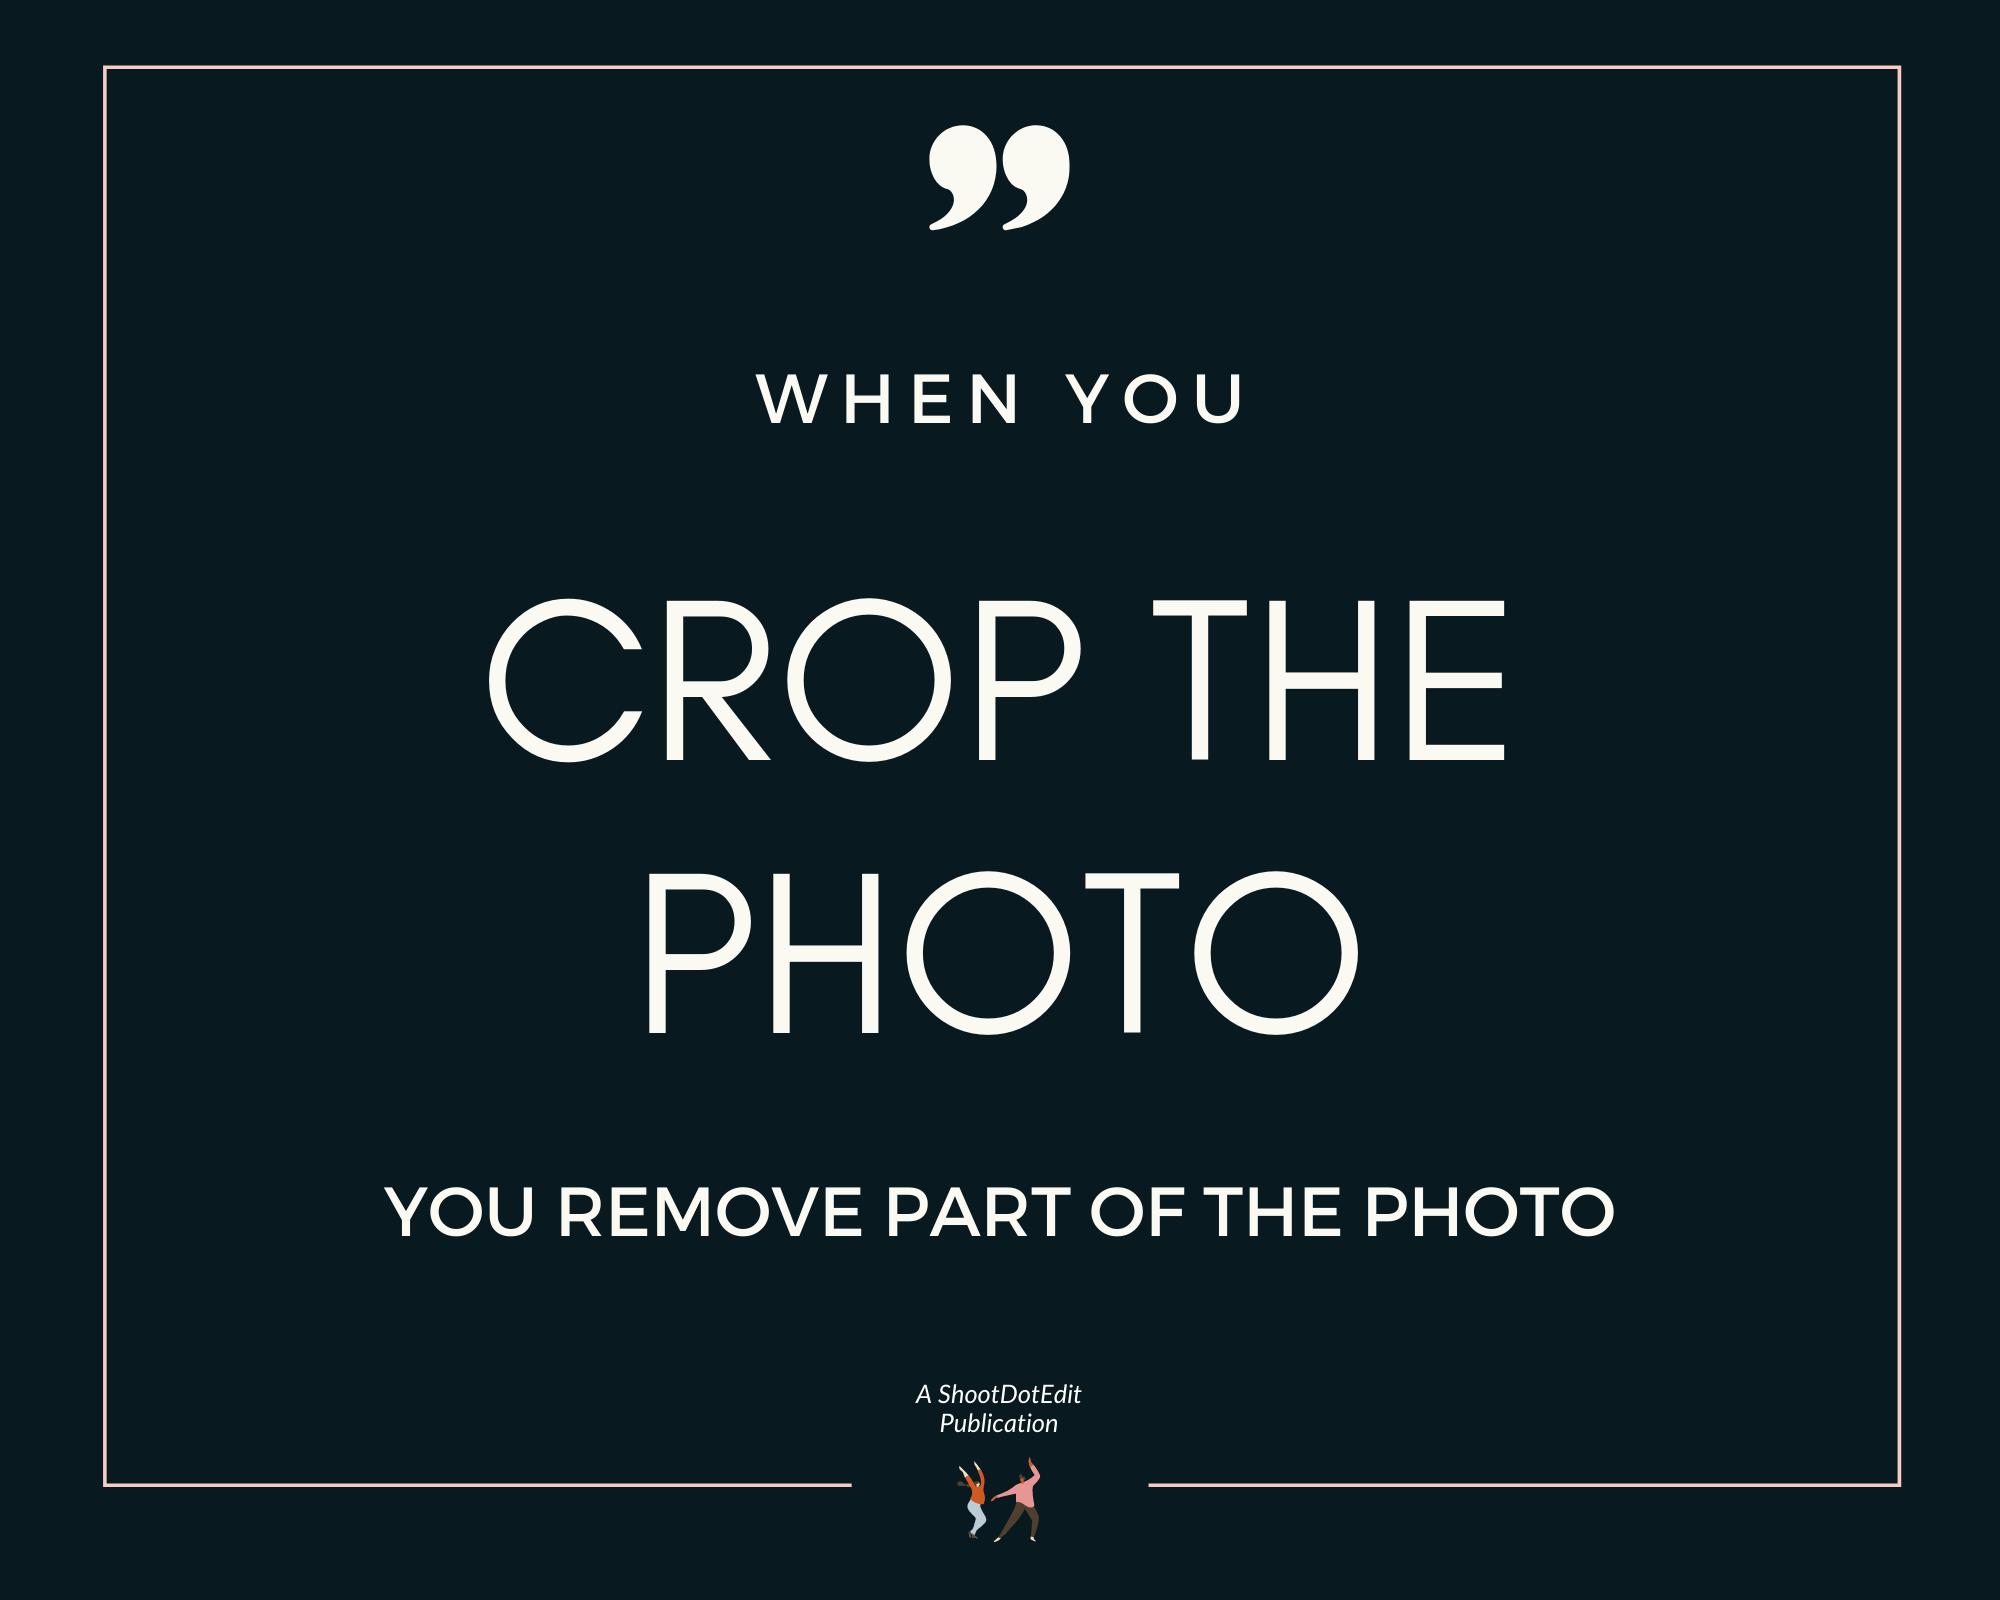 Infographic stating when you crop the photo you remove part of the photo